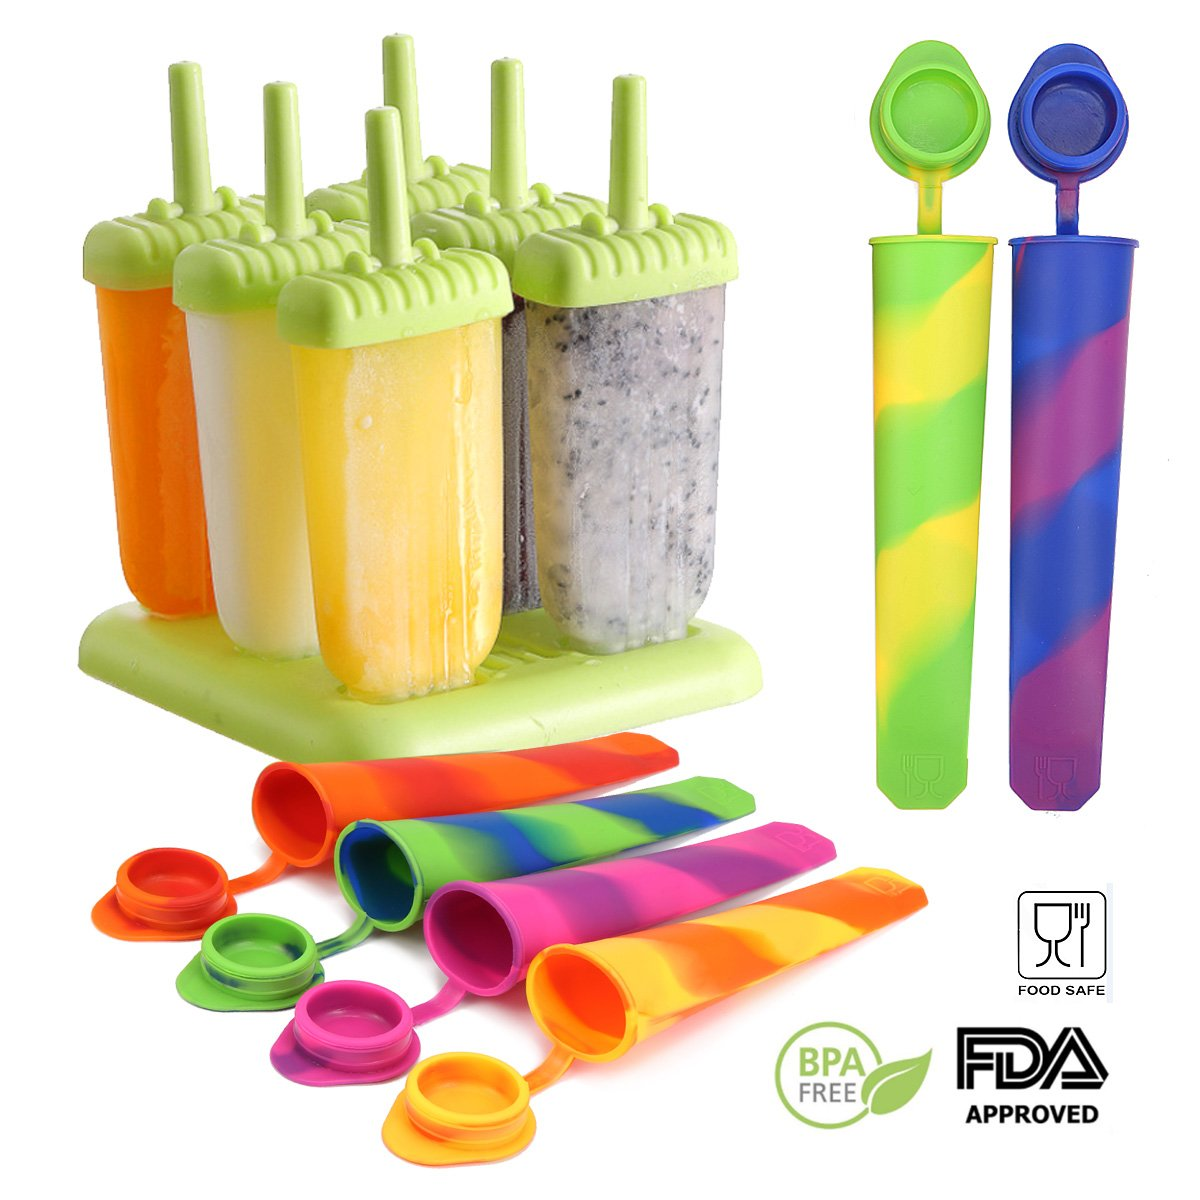 Skymore Popsicle Molds Set-Includes Set of 6 Reusable Popsicle Molds and Set of Silicone Ice Pop Maker Molds, BPA Free DIY Frozen Ice Pop Maker, Great Gift Kit for Yogurt or Freeze Pops